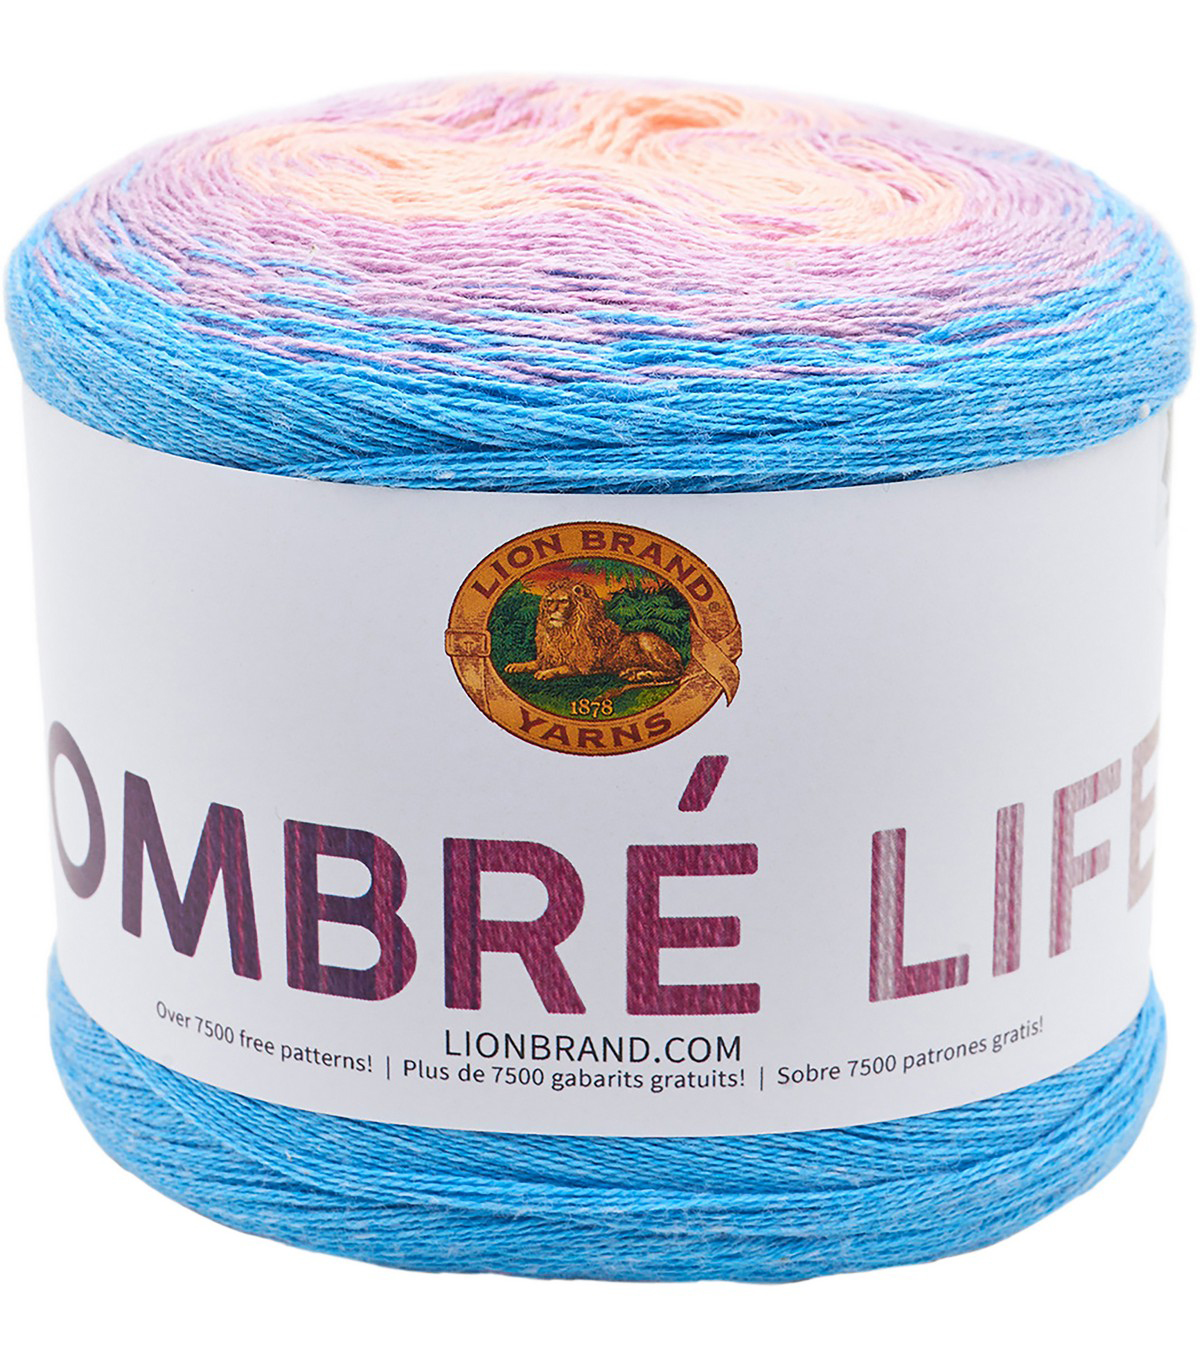 Lion Brand Ombre Life Yarn, Sunrise